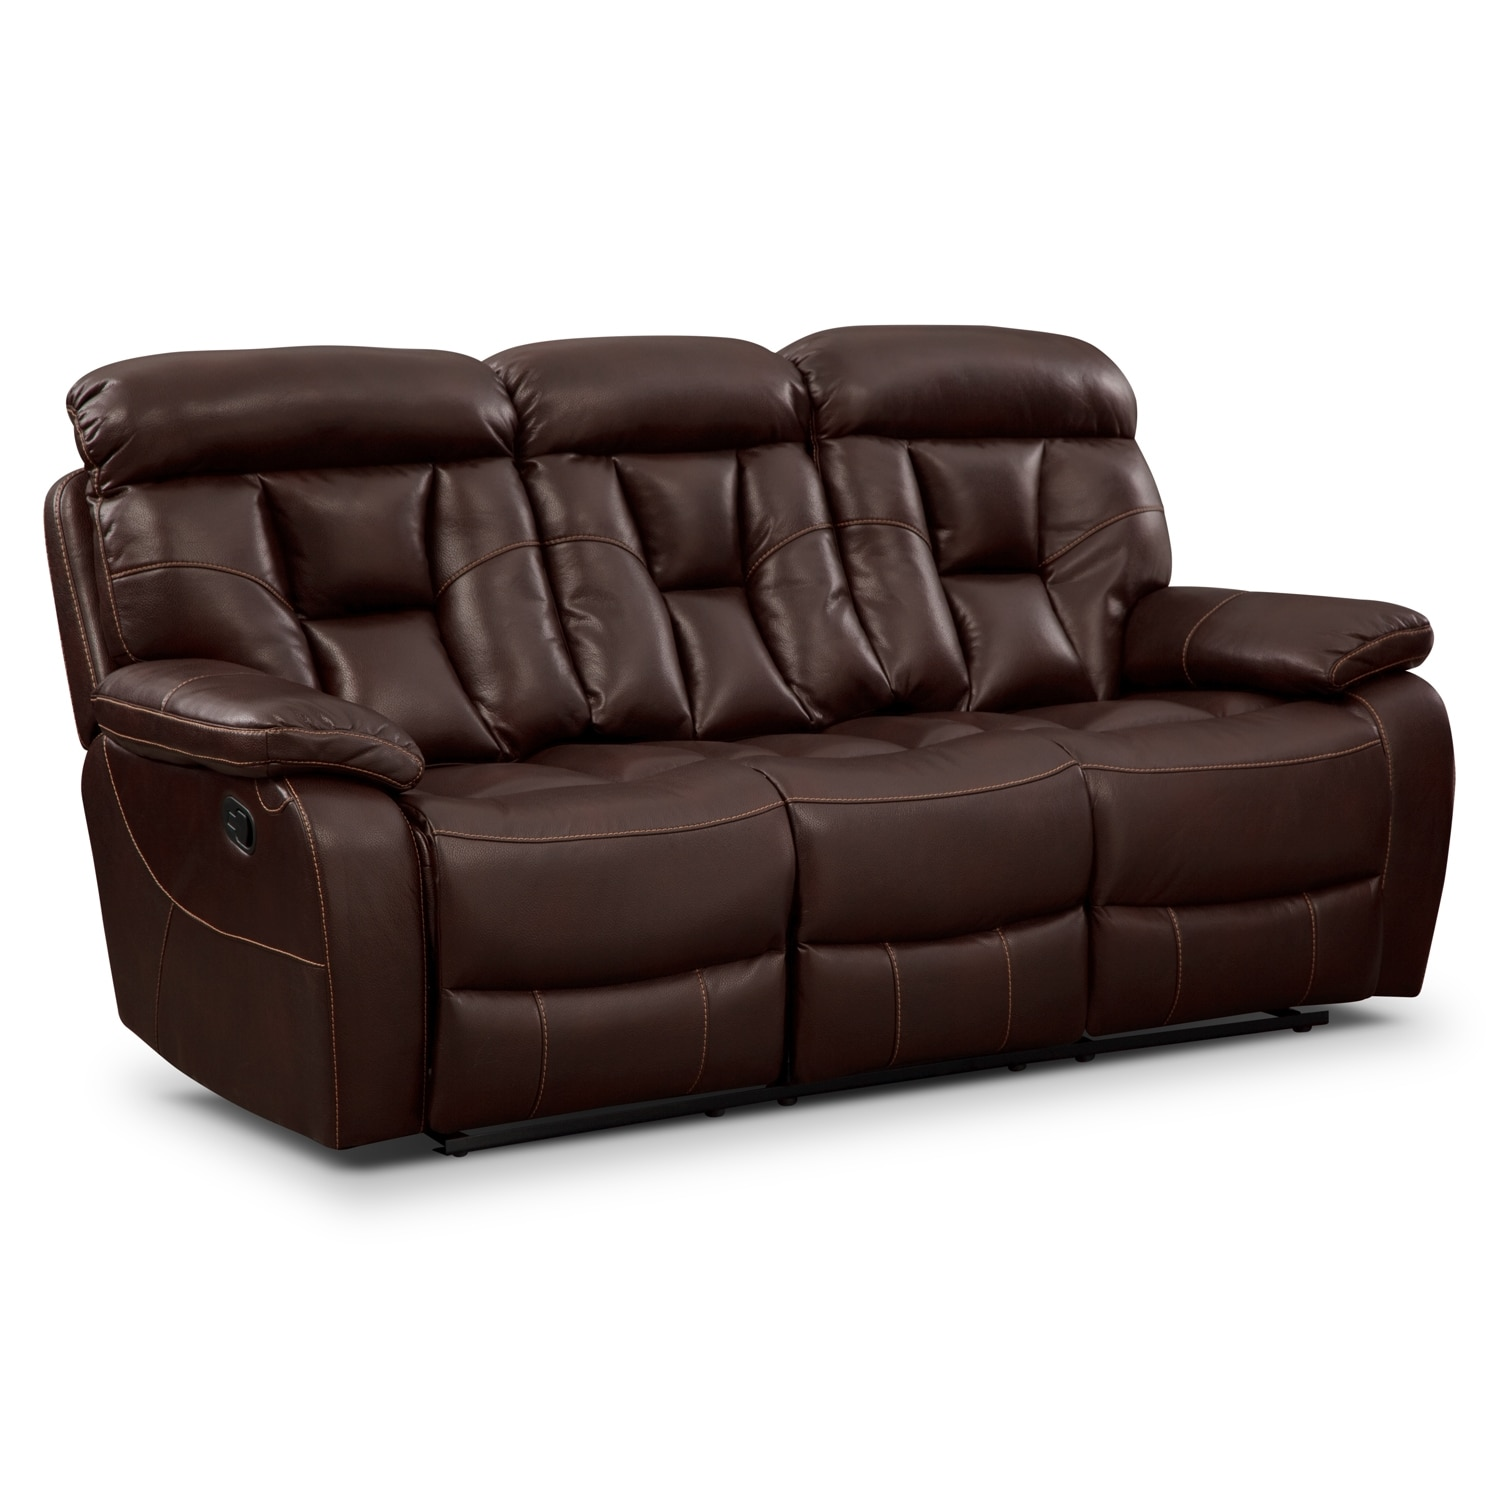 Dakota Reclining Sofa - Java